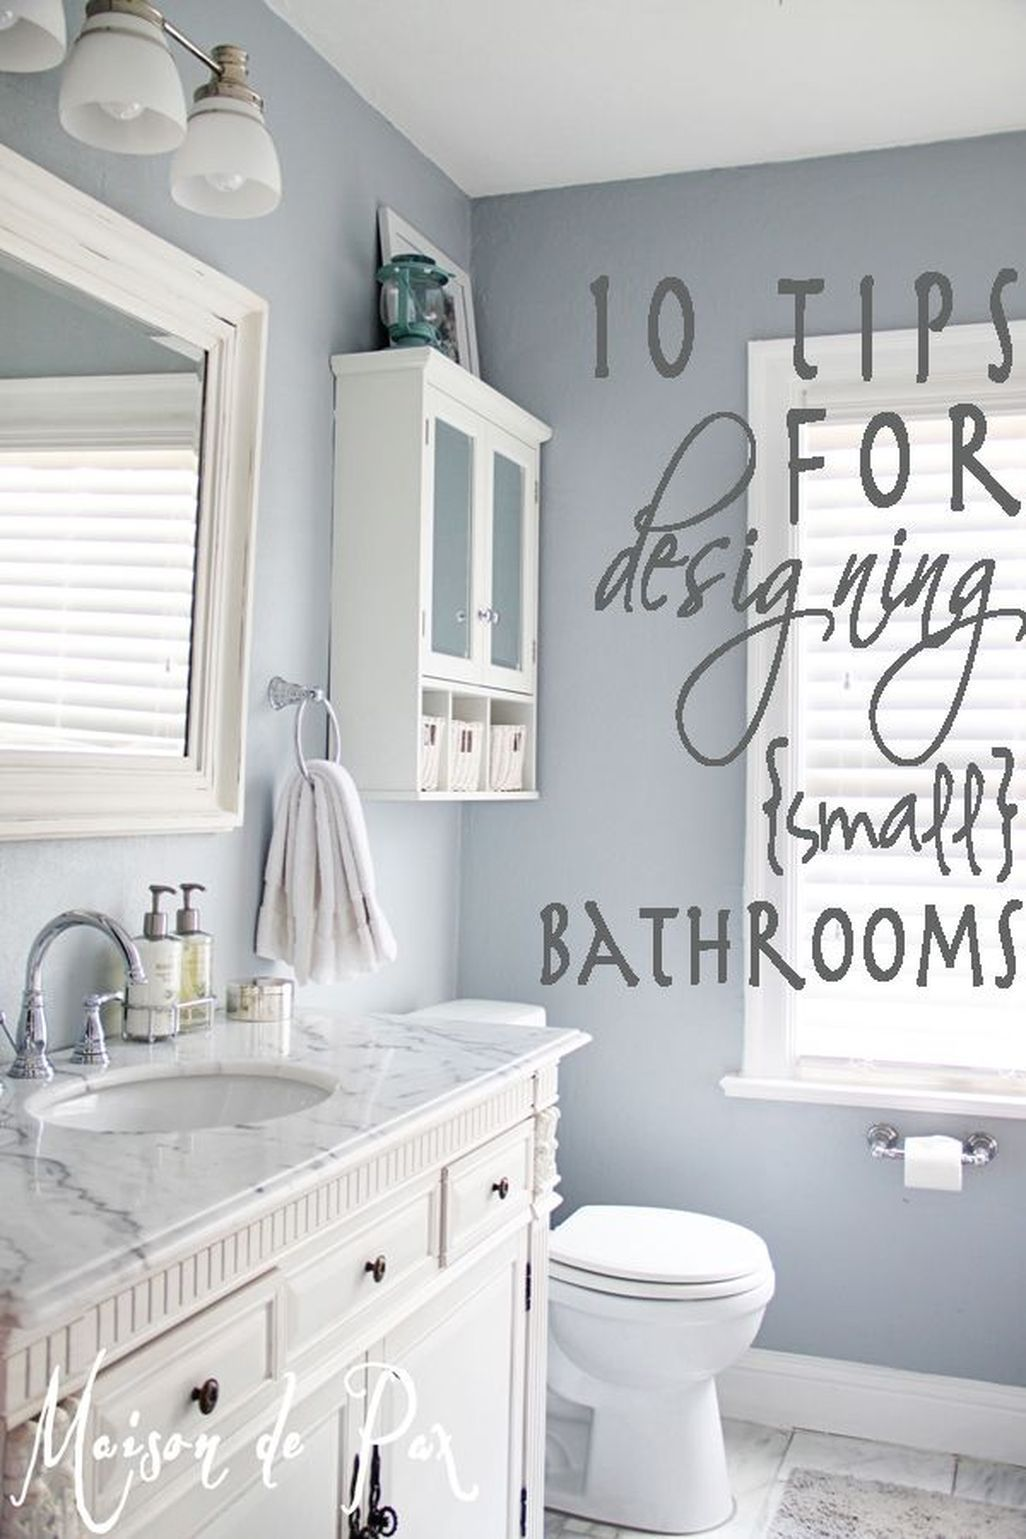 43 Unique Small Bathroom Remodel Ideas For Space Saving ... on Nice Bathroom Designs For Small Spaces  id=77600